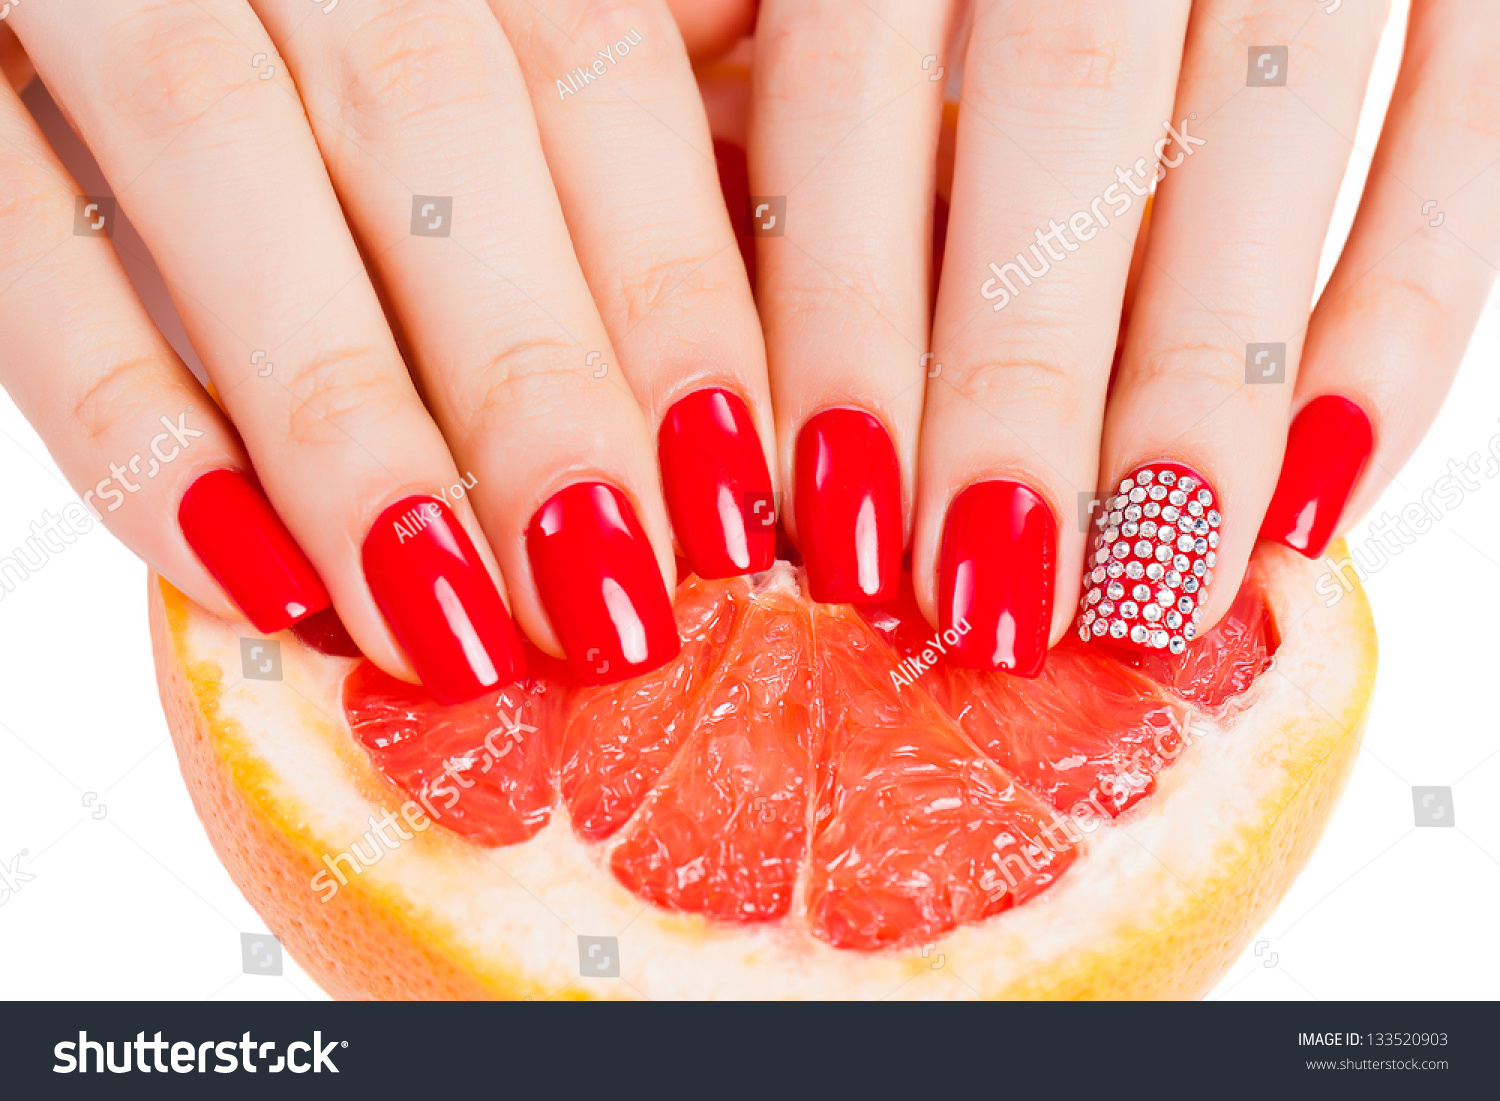 Girl Bright Red Nail Polish On Stock Photo 133520903 - Shutterstock